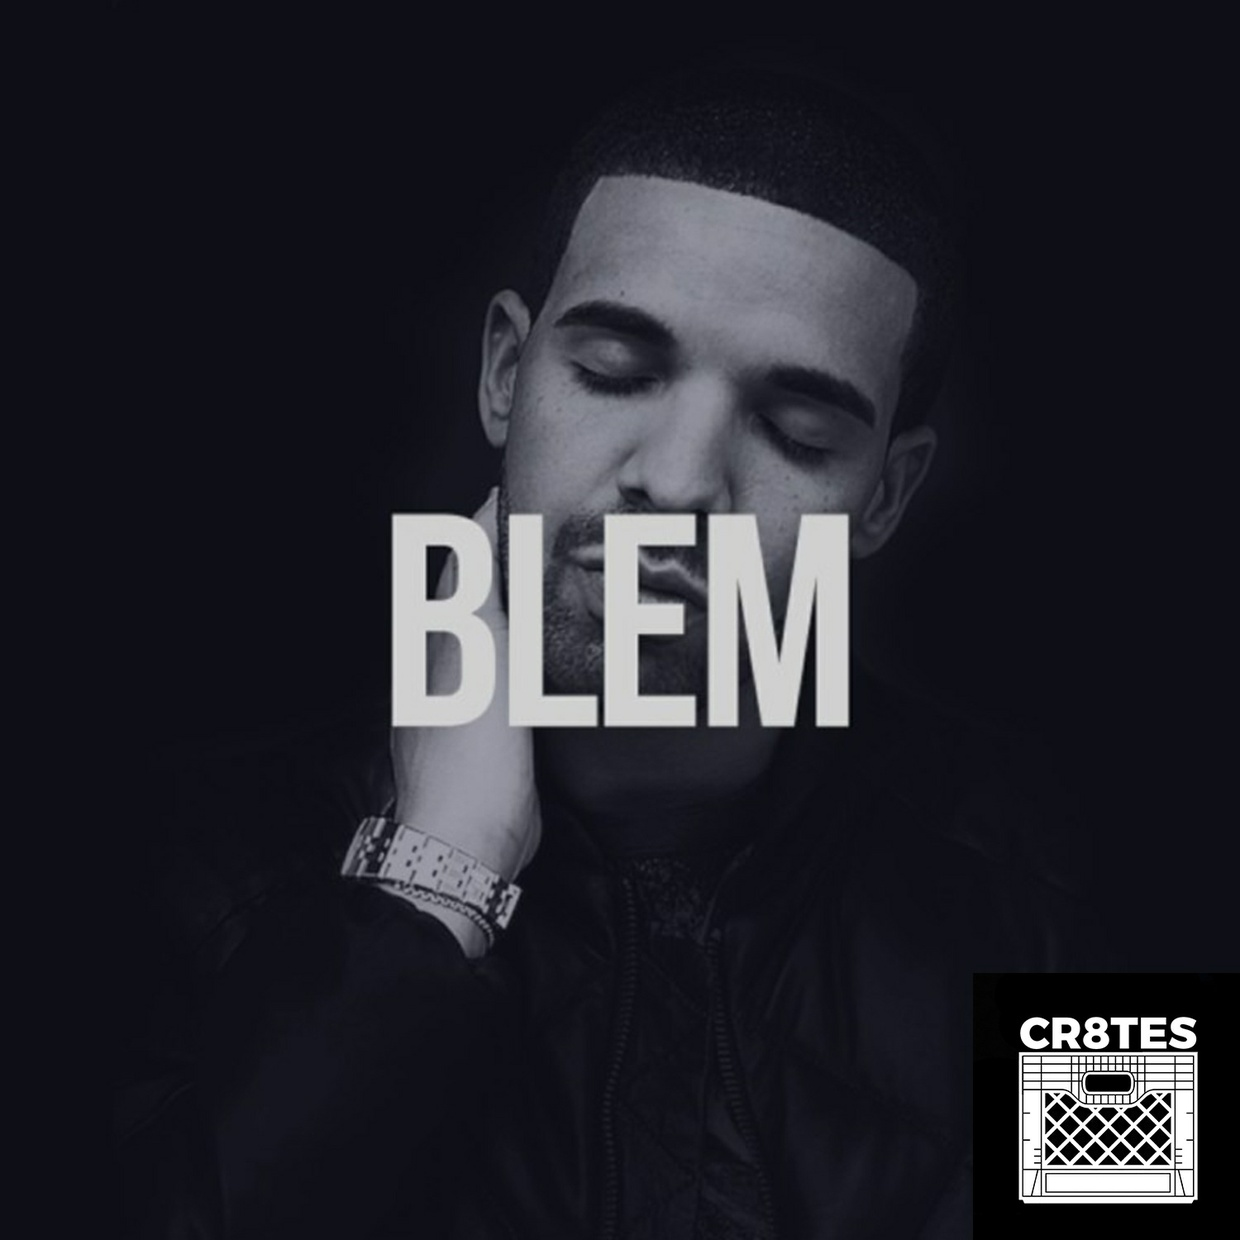 Drake - Blem (Cr8tes Mini Kit)